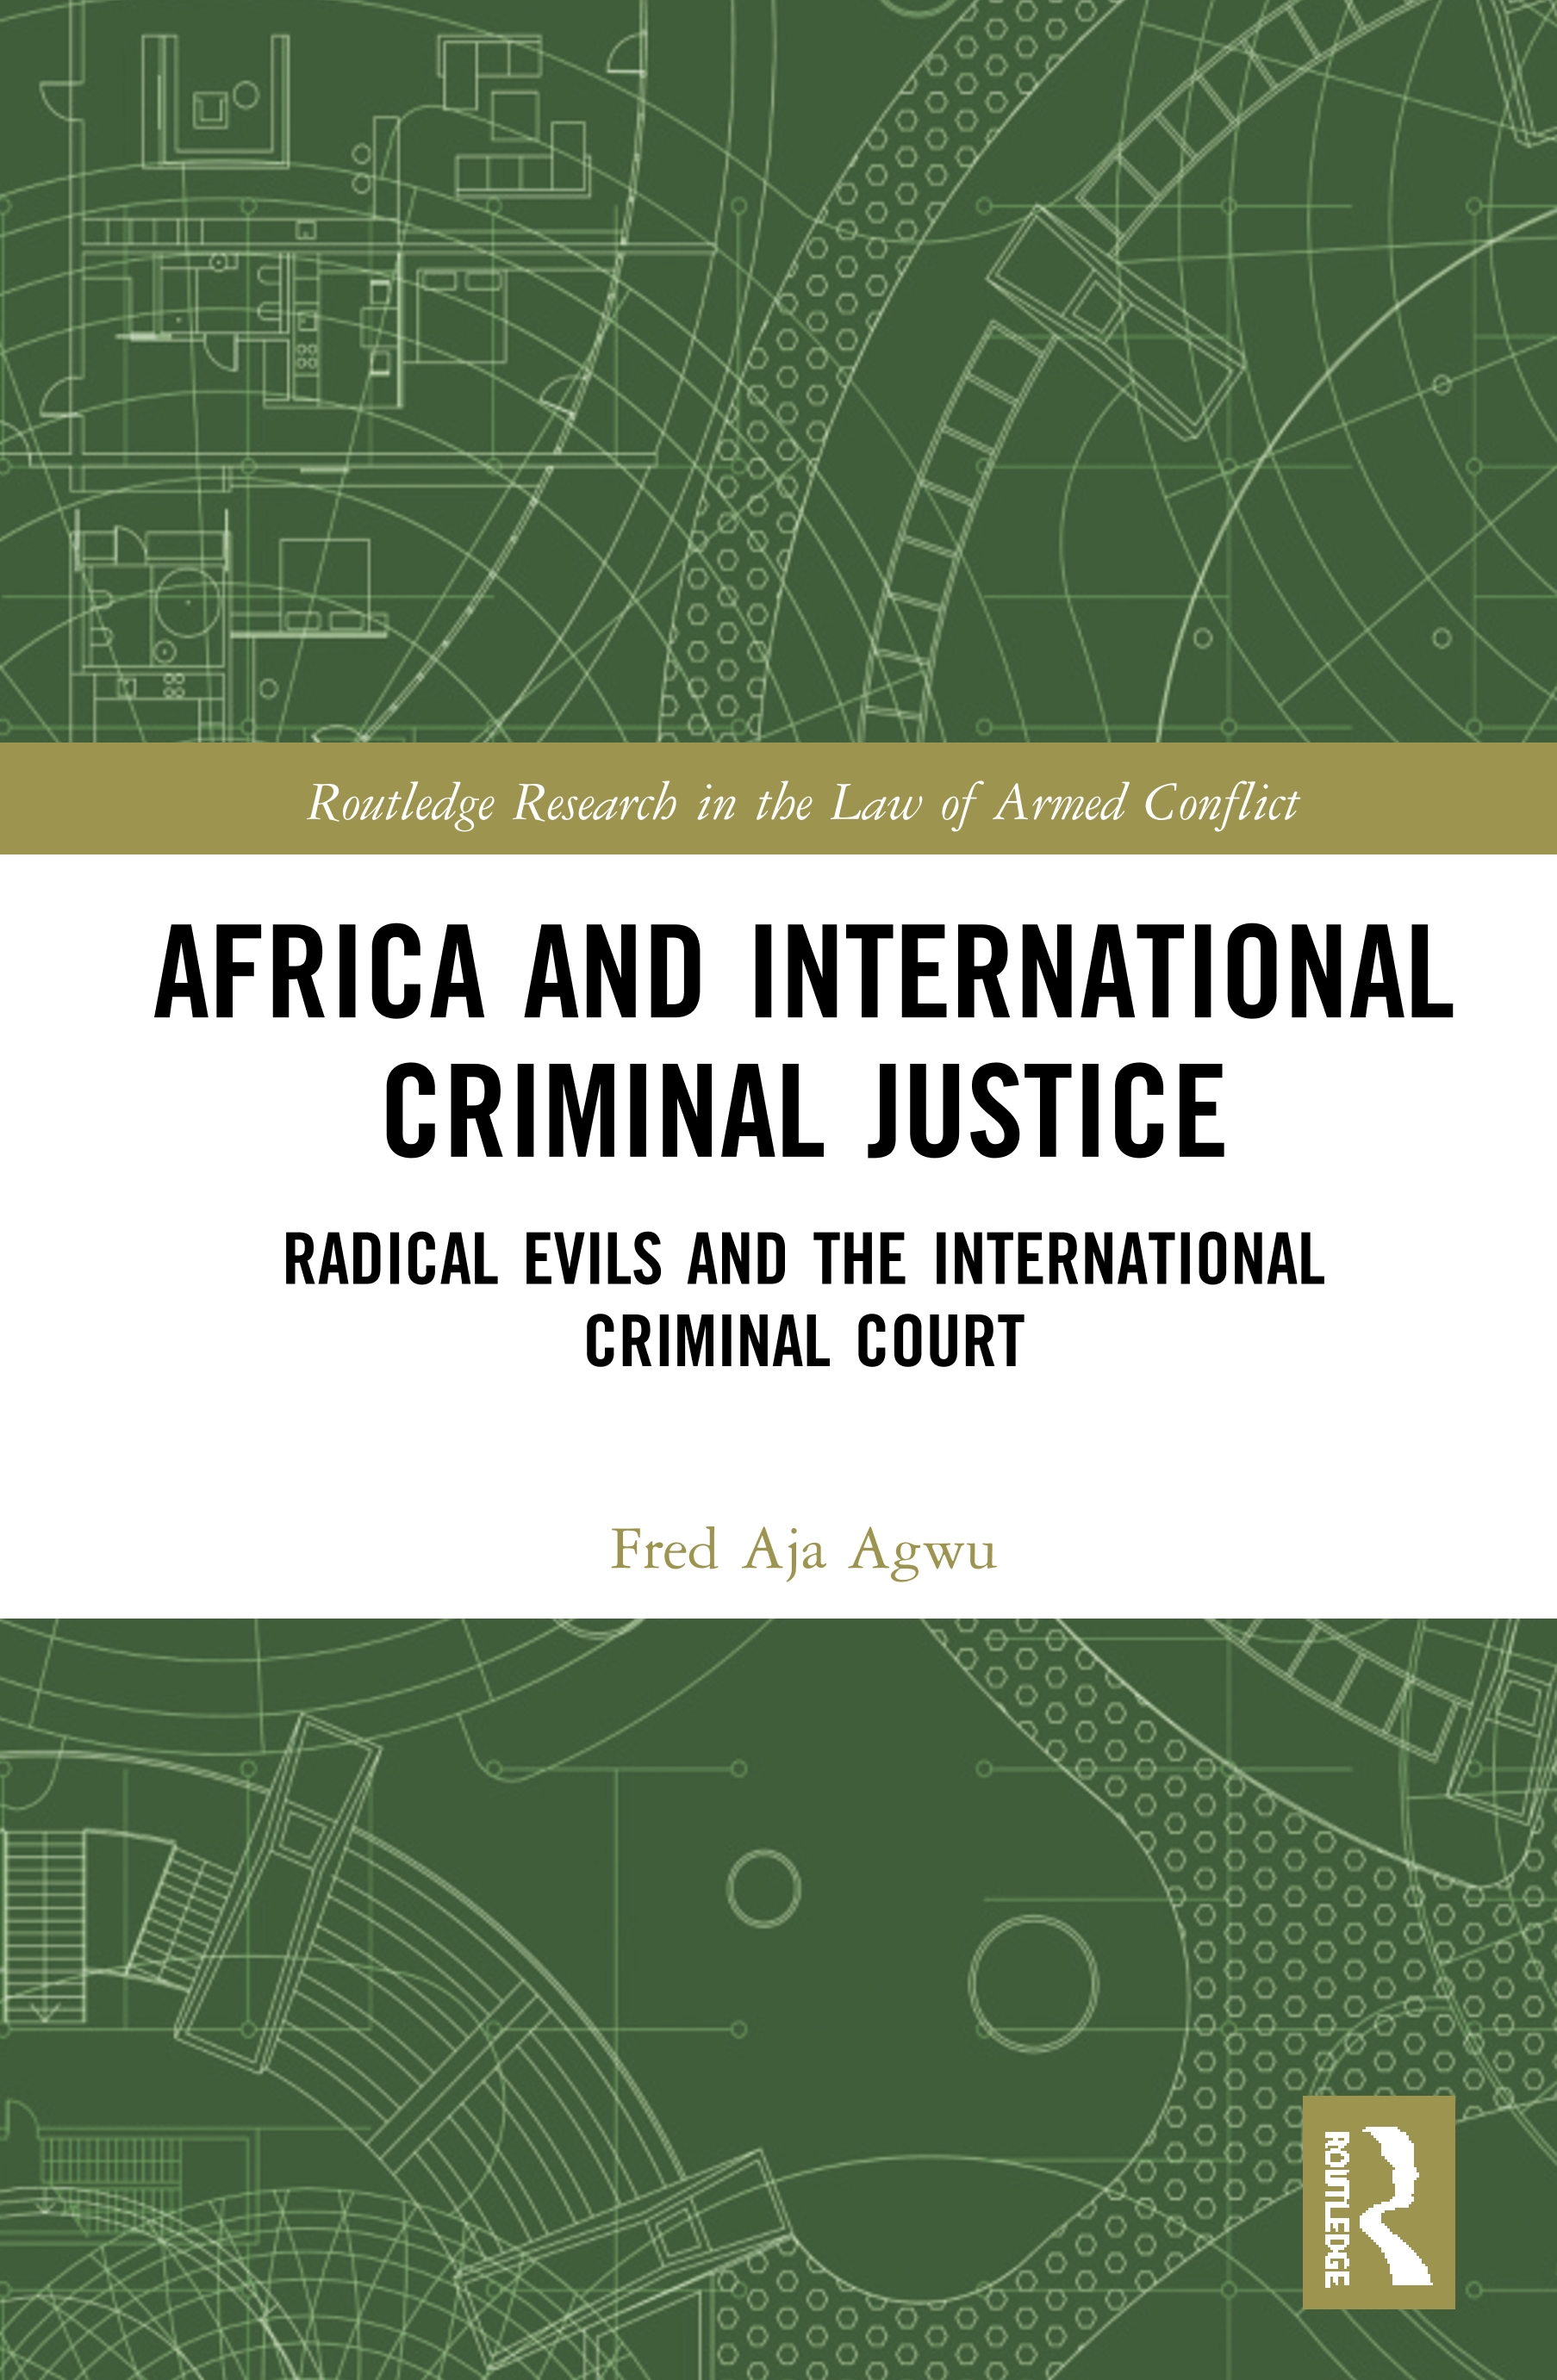 Africa and International Criminal Justice: Radical Evils and the International Criminal Court book cover